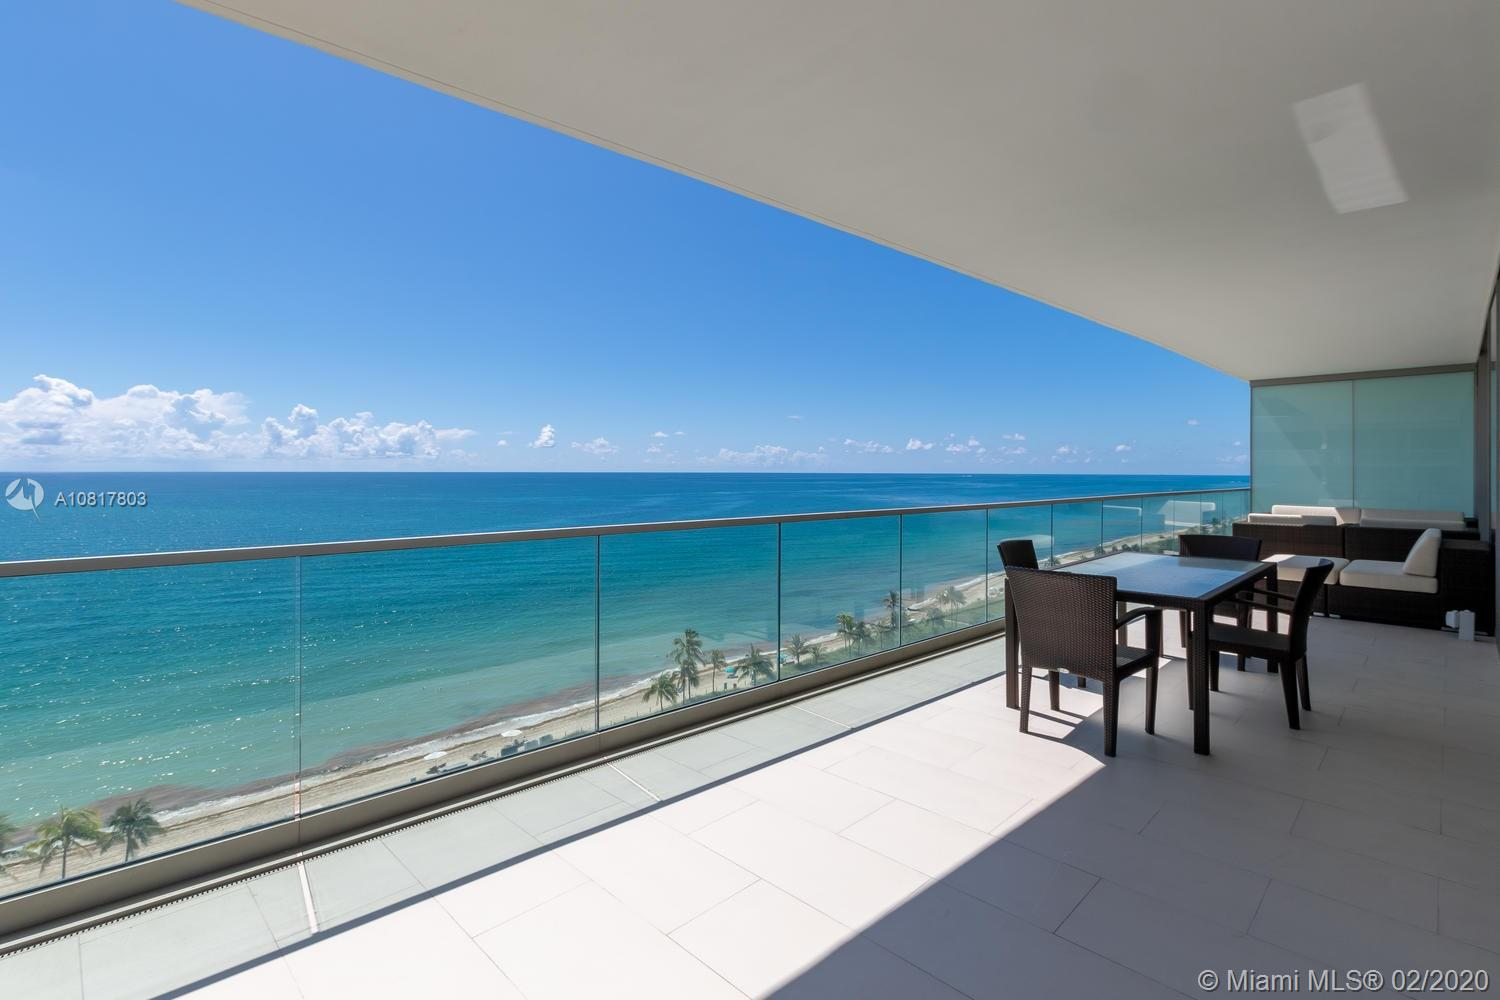 EXQUISITE, SPACIOUS 4 BEDROOMS/5.5 BATHROOMS LUXURIES RESIDENCY IN THE OCEANA - THE HEART OF BAL HARBOUR. TASTEFUL HIGH-END FINISHES TO A SLEEK & UNIQUE QUALITY DESIGN. European Furnishings, kitchen, doors, bathrooms are immaculately accompanying the square footage and views. CORNER UNIT WITH DIRECT OCEAN VIEWS. SMART HOUSE, LIGHTING, AC & MUSIC. Oceana offers magnificent amenities and luxurious Lifestyle. IT'S A DREAM COME TRUE, NOTHING TO ADD OR TAKE AWAY. Qualifies Buyers. So, there you have it - Your very own private luxury private getaway and home for the shamelessly rich and dangerously wealthy.